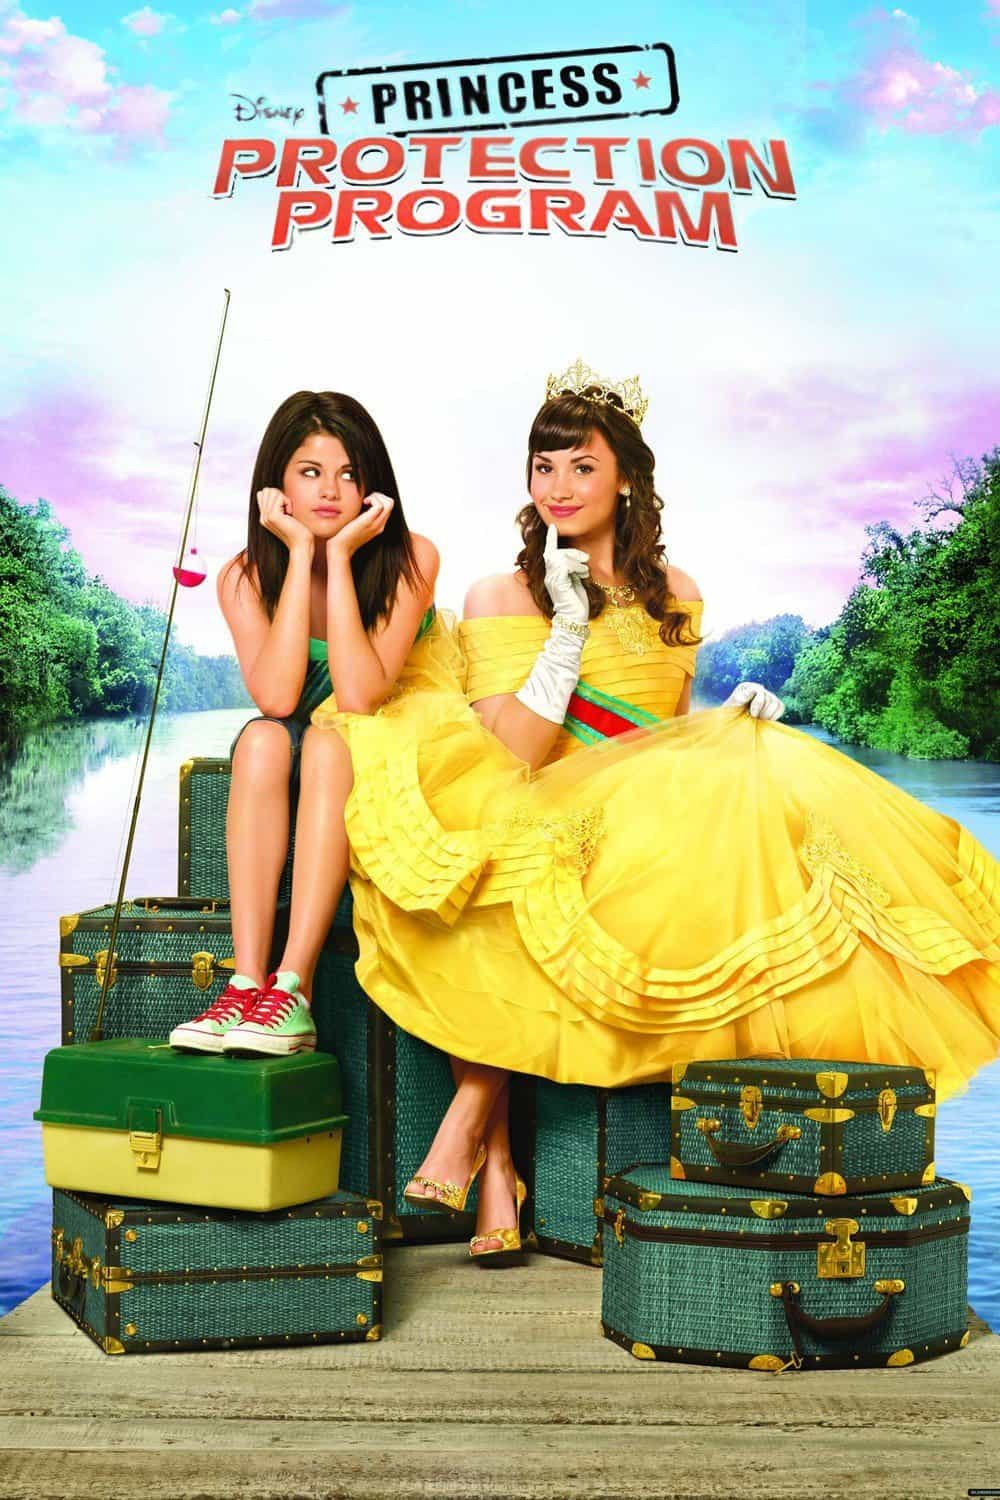 Princess Protection Program, 2009